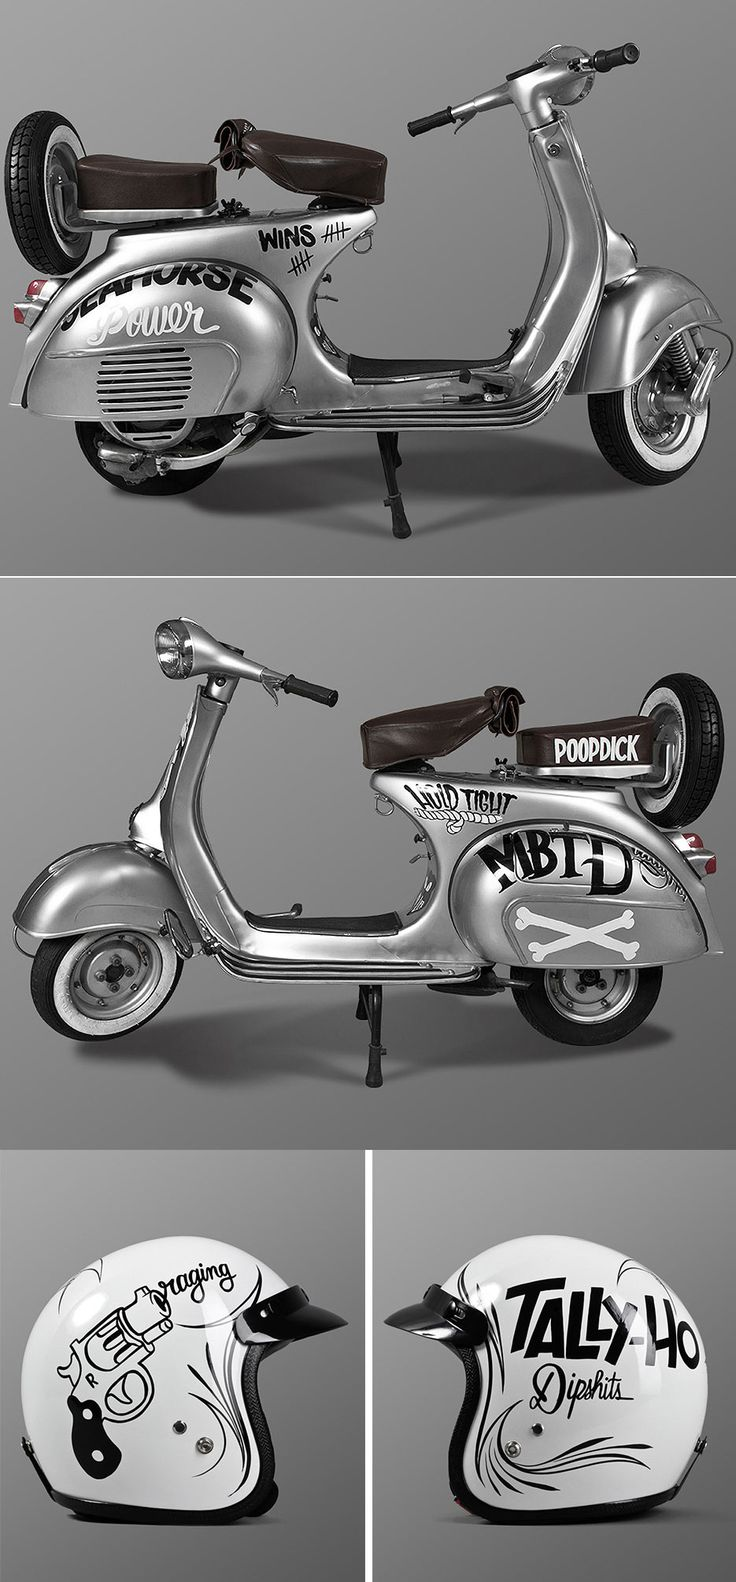 A 1961 Vespa, fully restored with original parts, decals, Café Racer Helmet and leather toolbag designed by Mcbess and painted by Toons One from the Berlin based Tuning shop Cafe Racer 69.